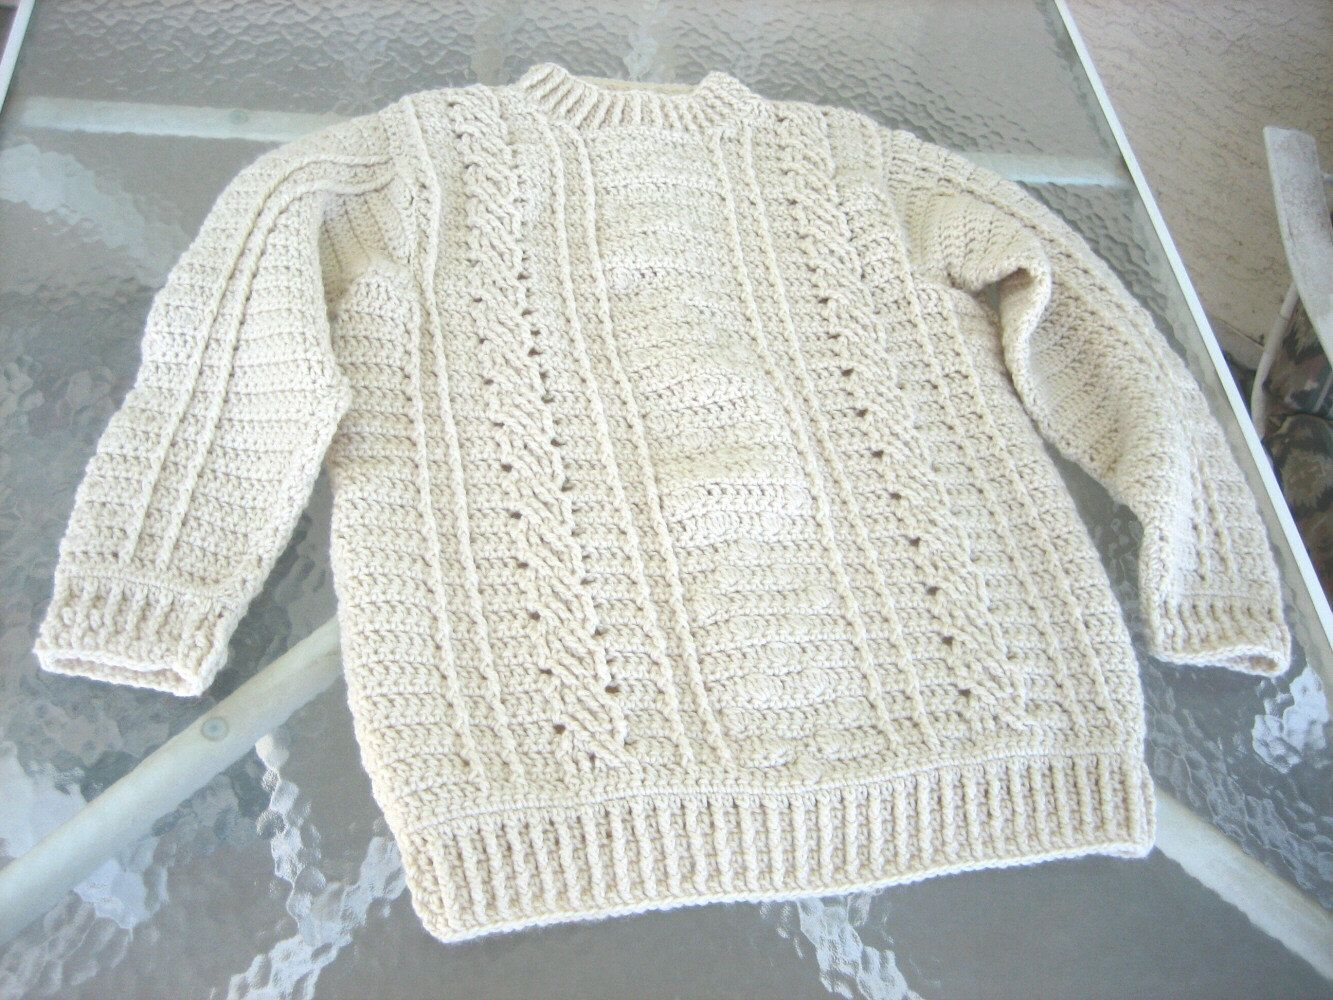 knitted sweater for beginners | Summary A nearly seamless baby ...